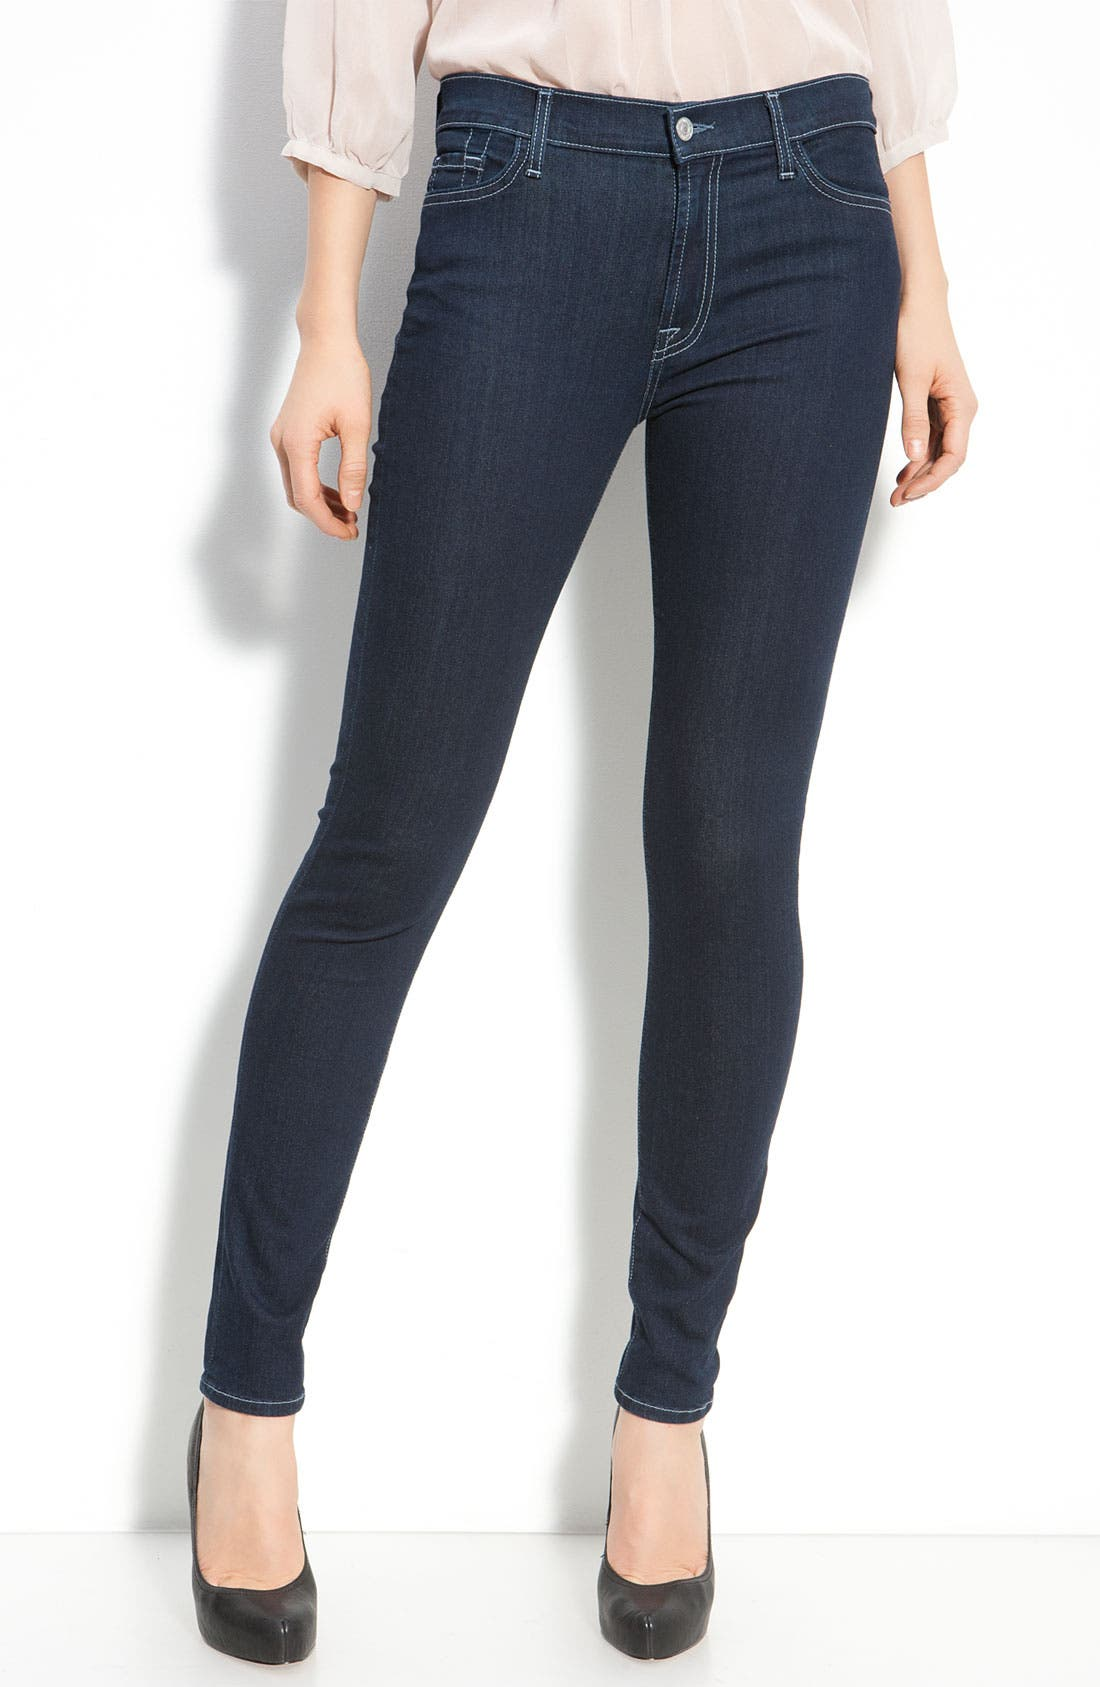 Main Image - 7 For All Mankind® High Rise Skinny Leg Jeans (Rinsed Indigo Wash)